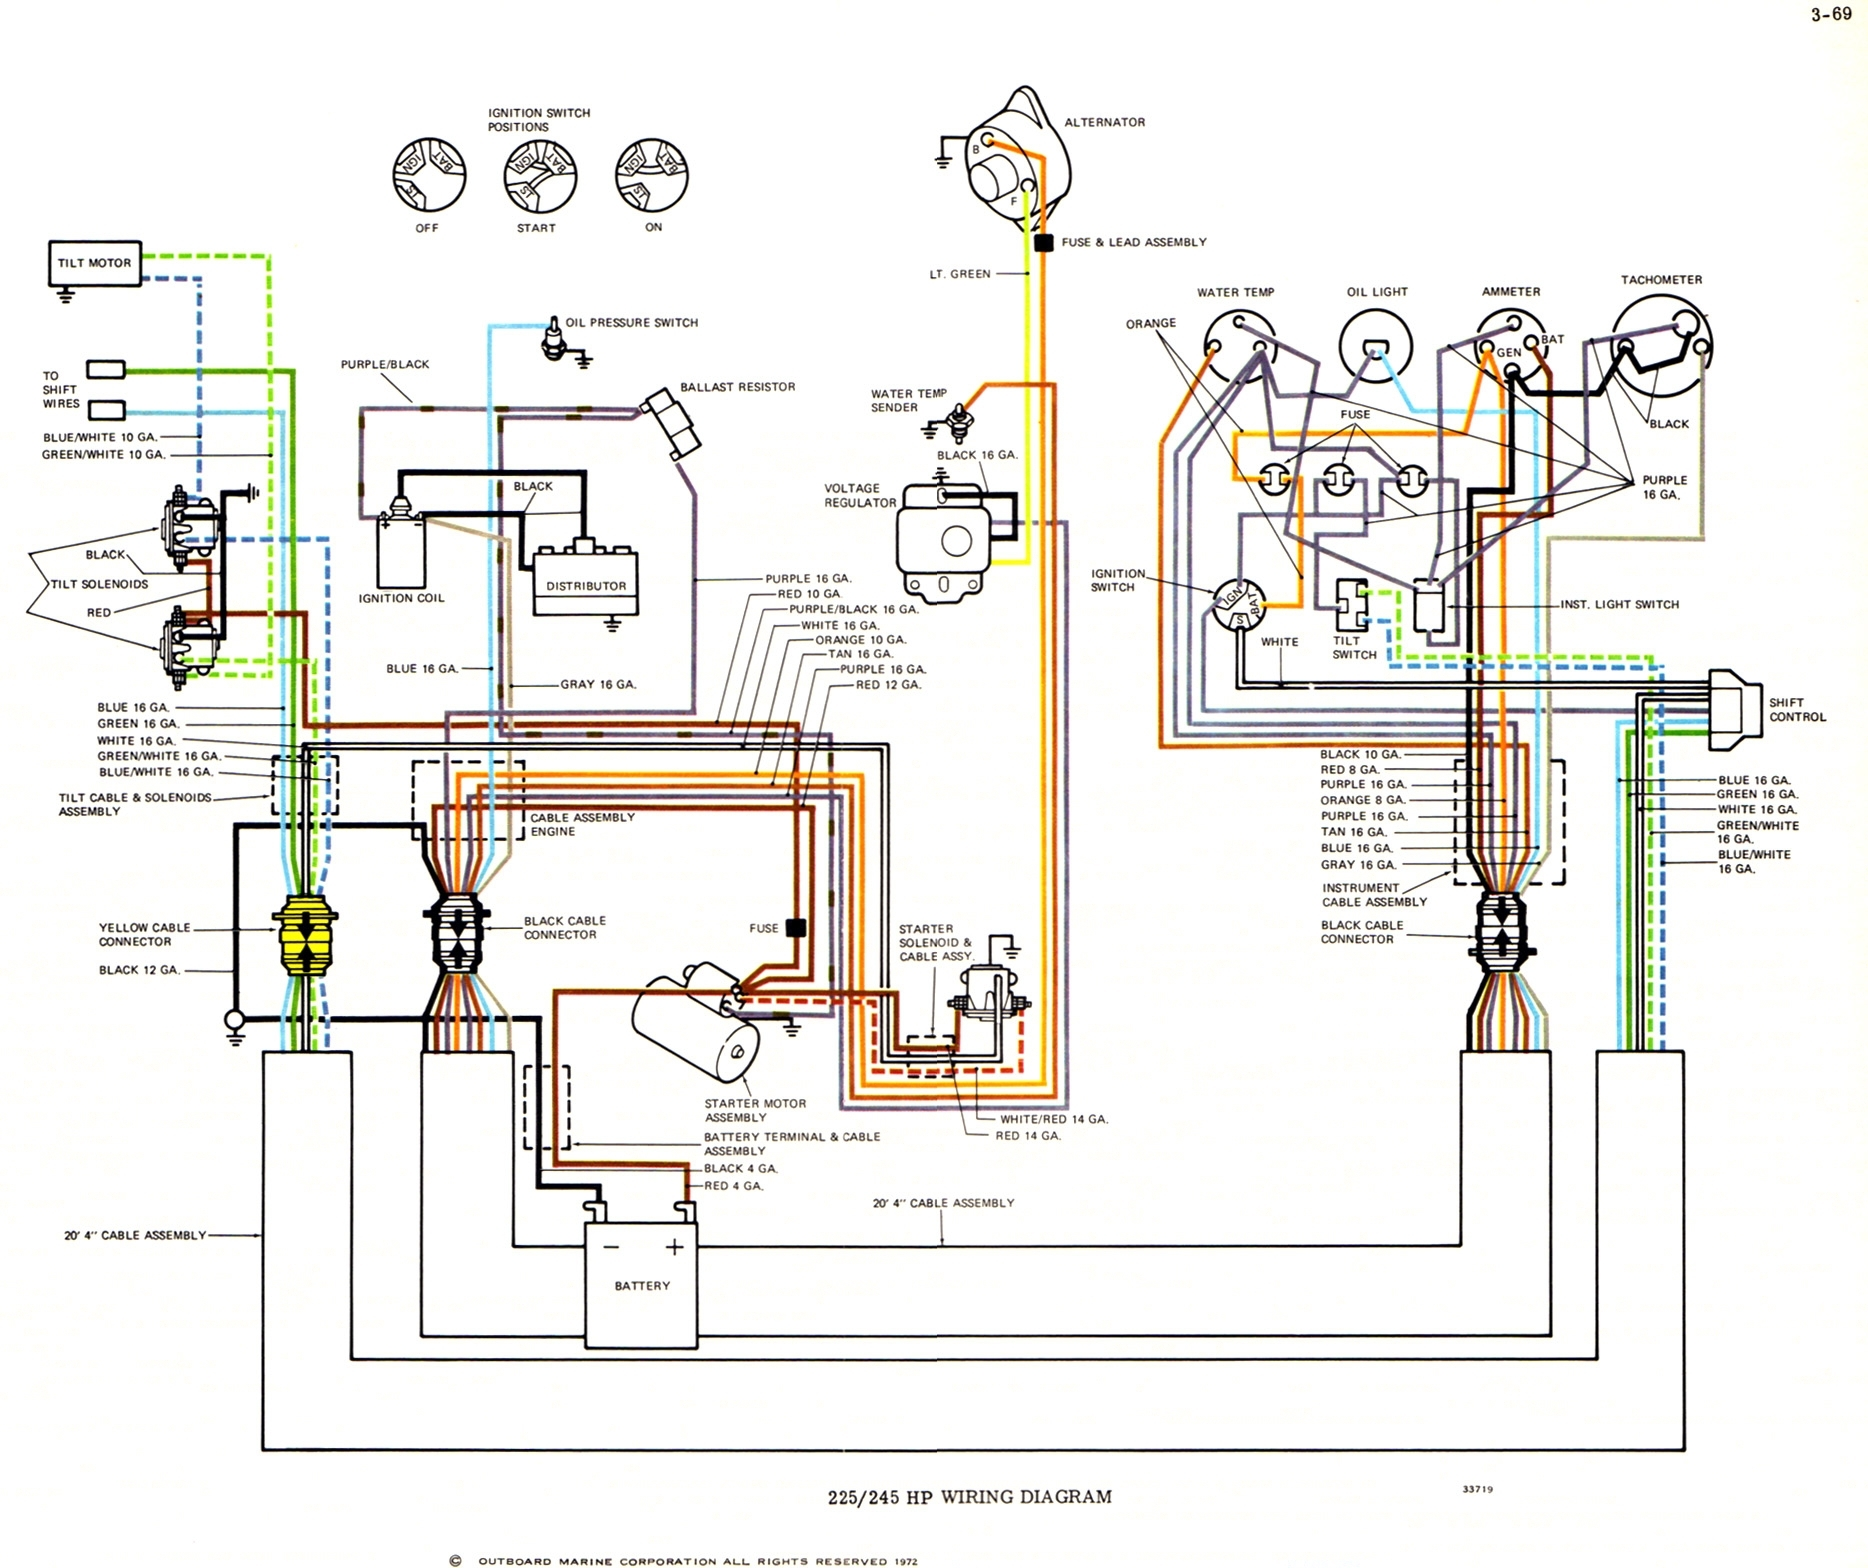 outstanding mercruiser boat gauge wiring diagram ideas best on Boat Wiring Diagram for Dashboard Wiring Boat Lights for cute teleflex marine gauges wiring diagram photos electrical